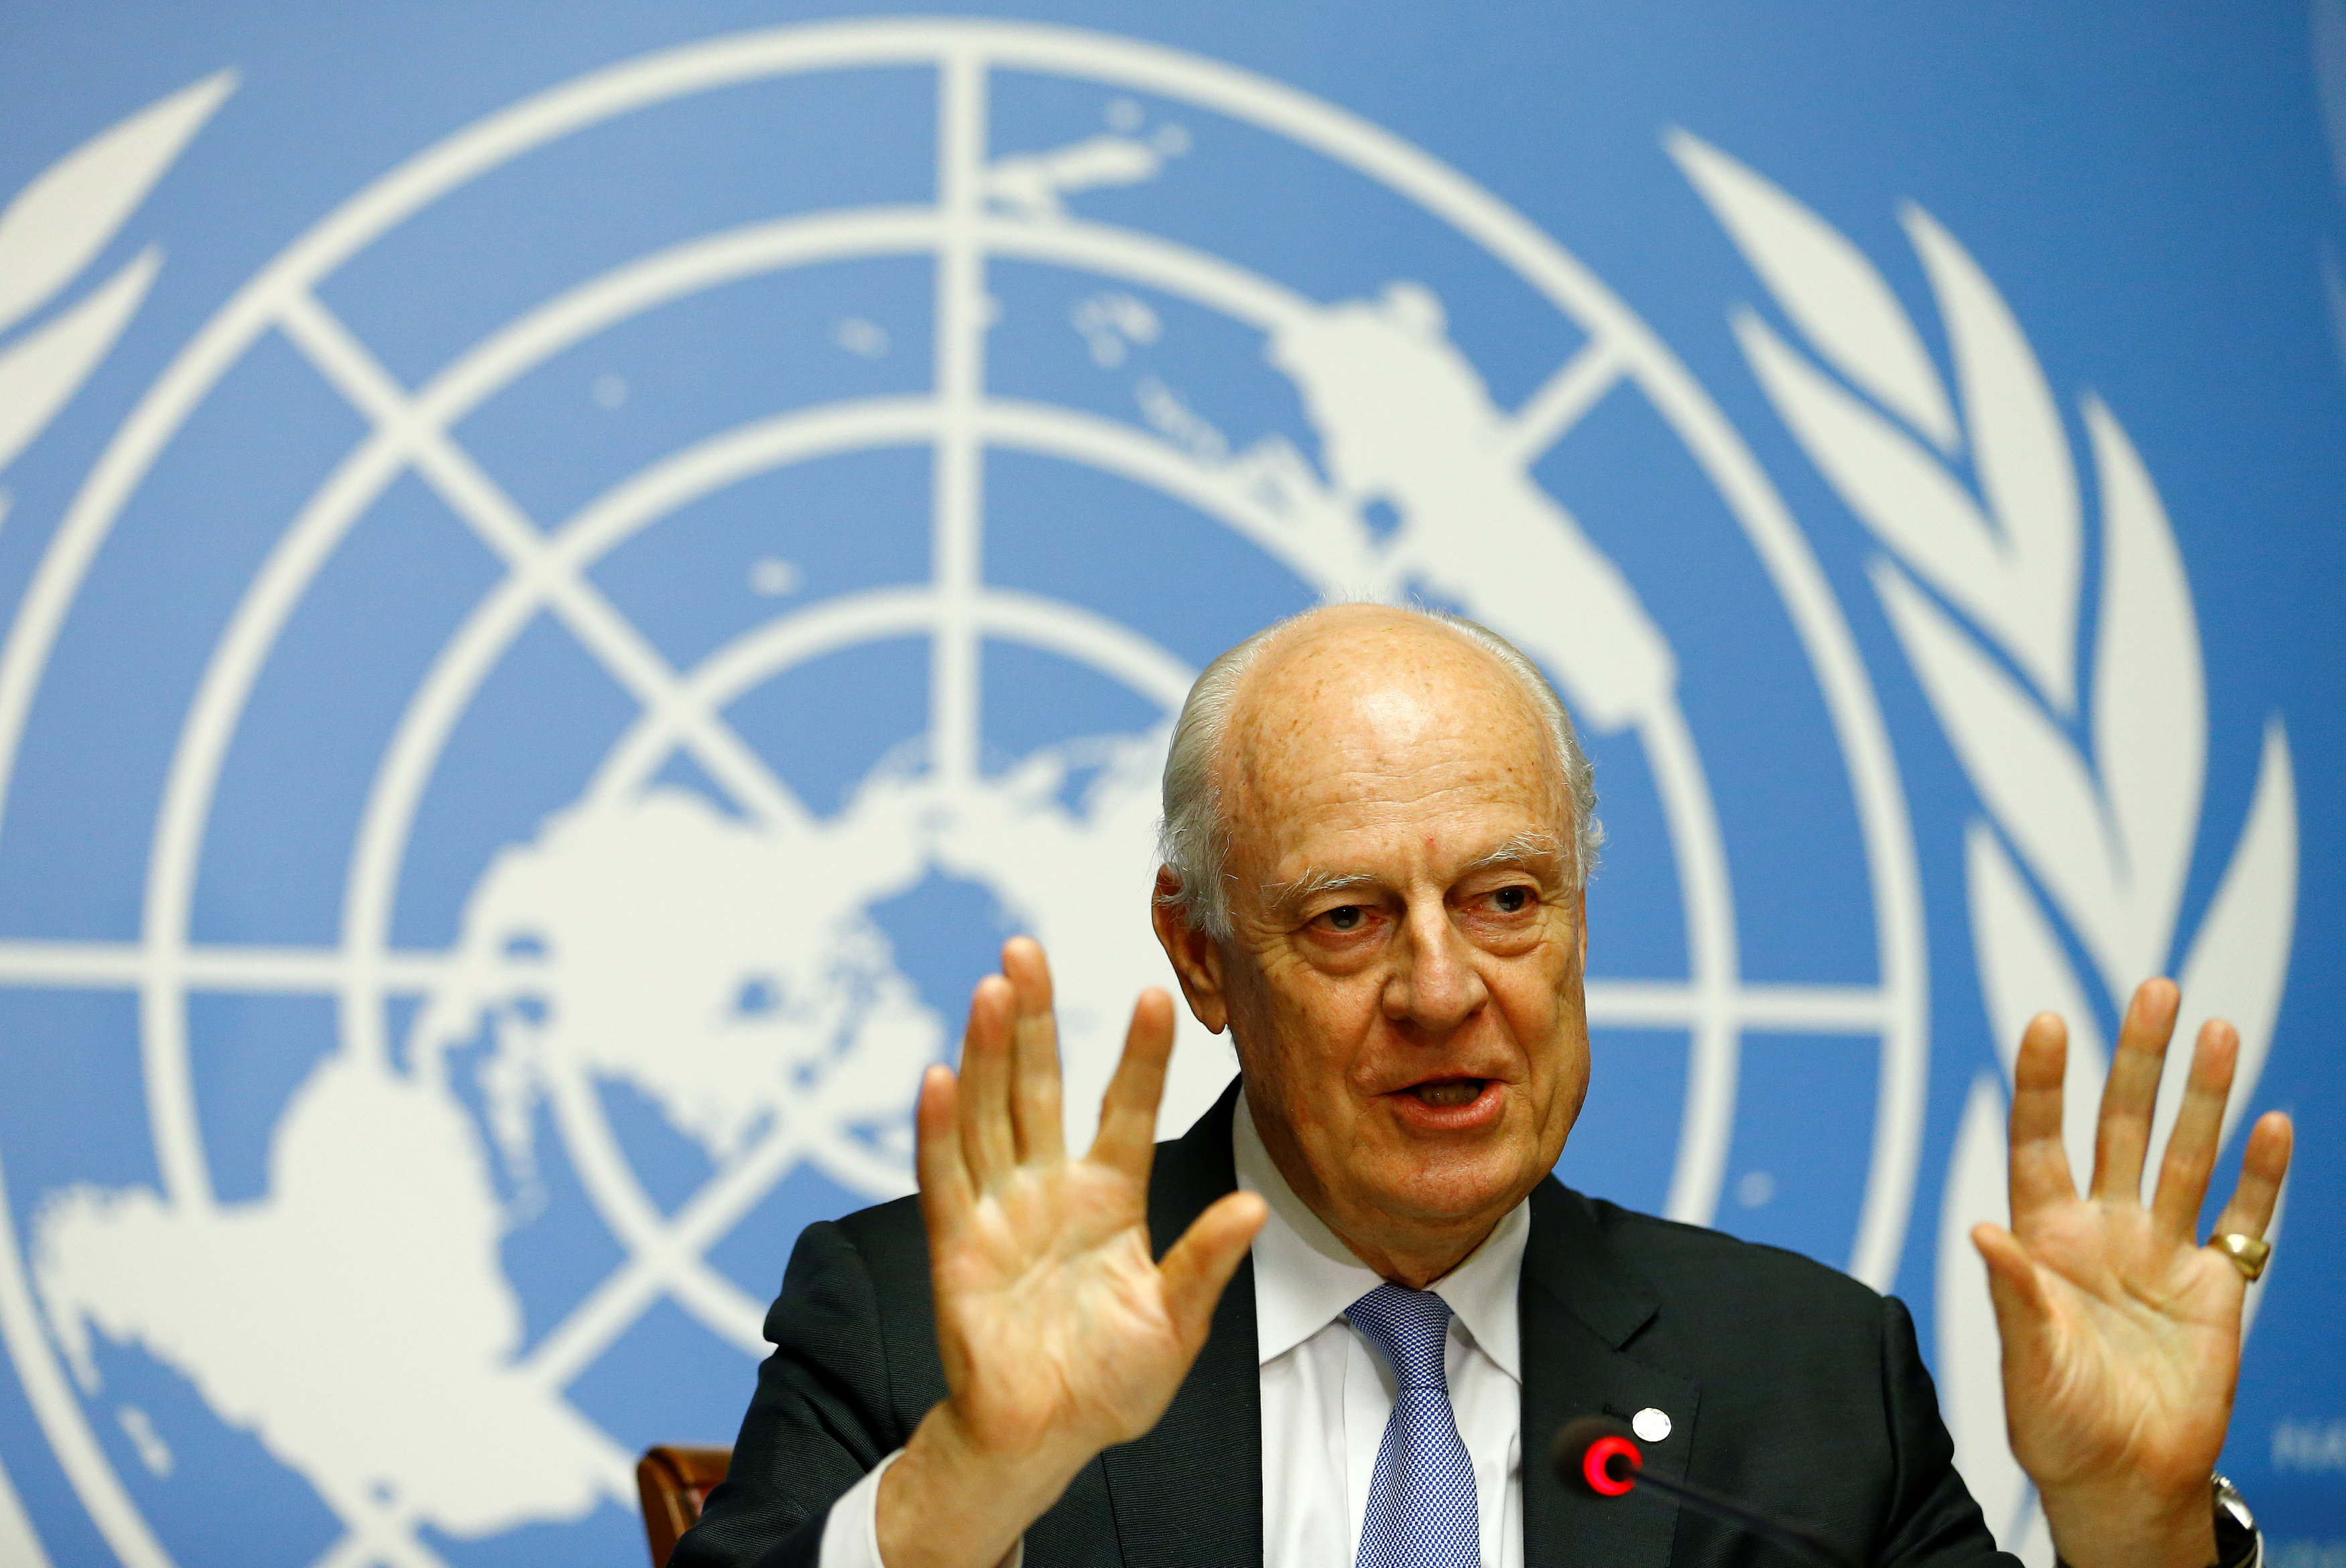 United Nations Special Envoy for Syria Staffan de Mistura attends a news conference during the Intra Syria talks at the U.N. offices in Geneva, Switzerland